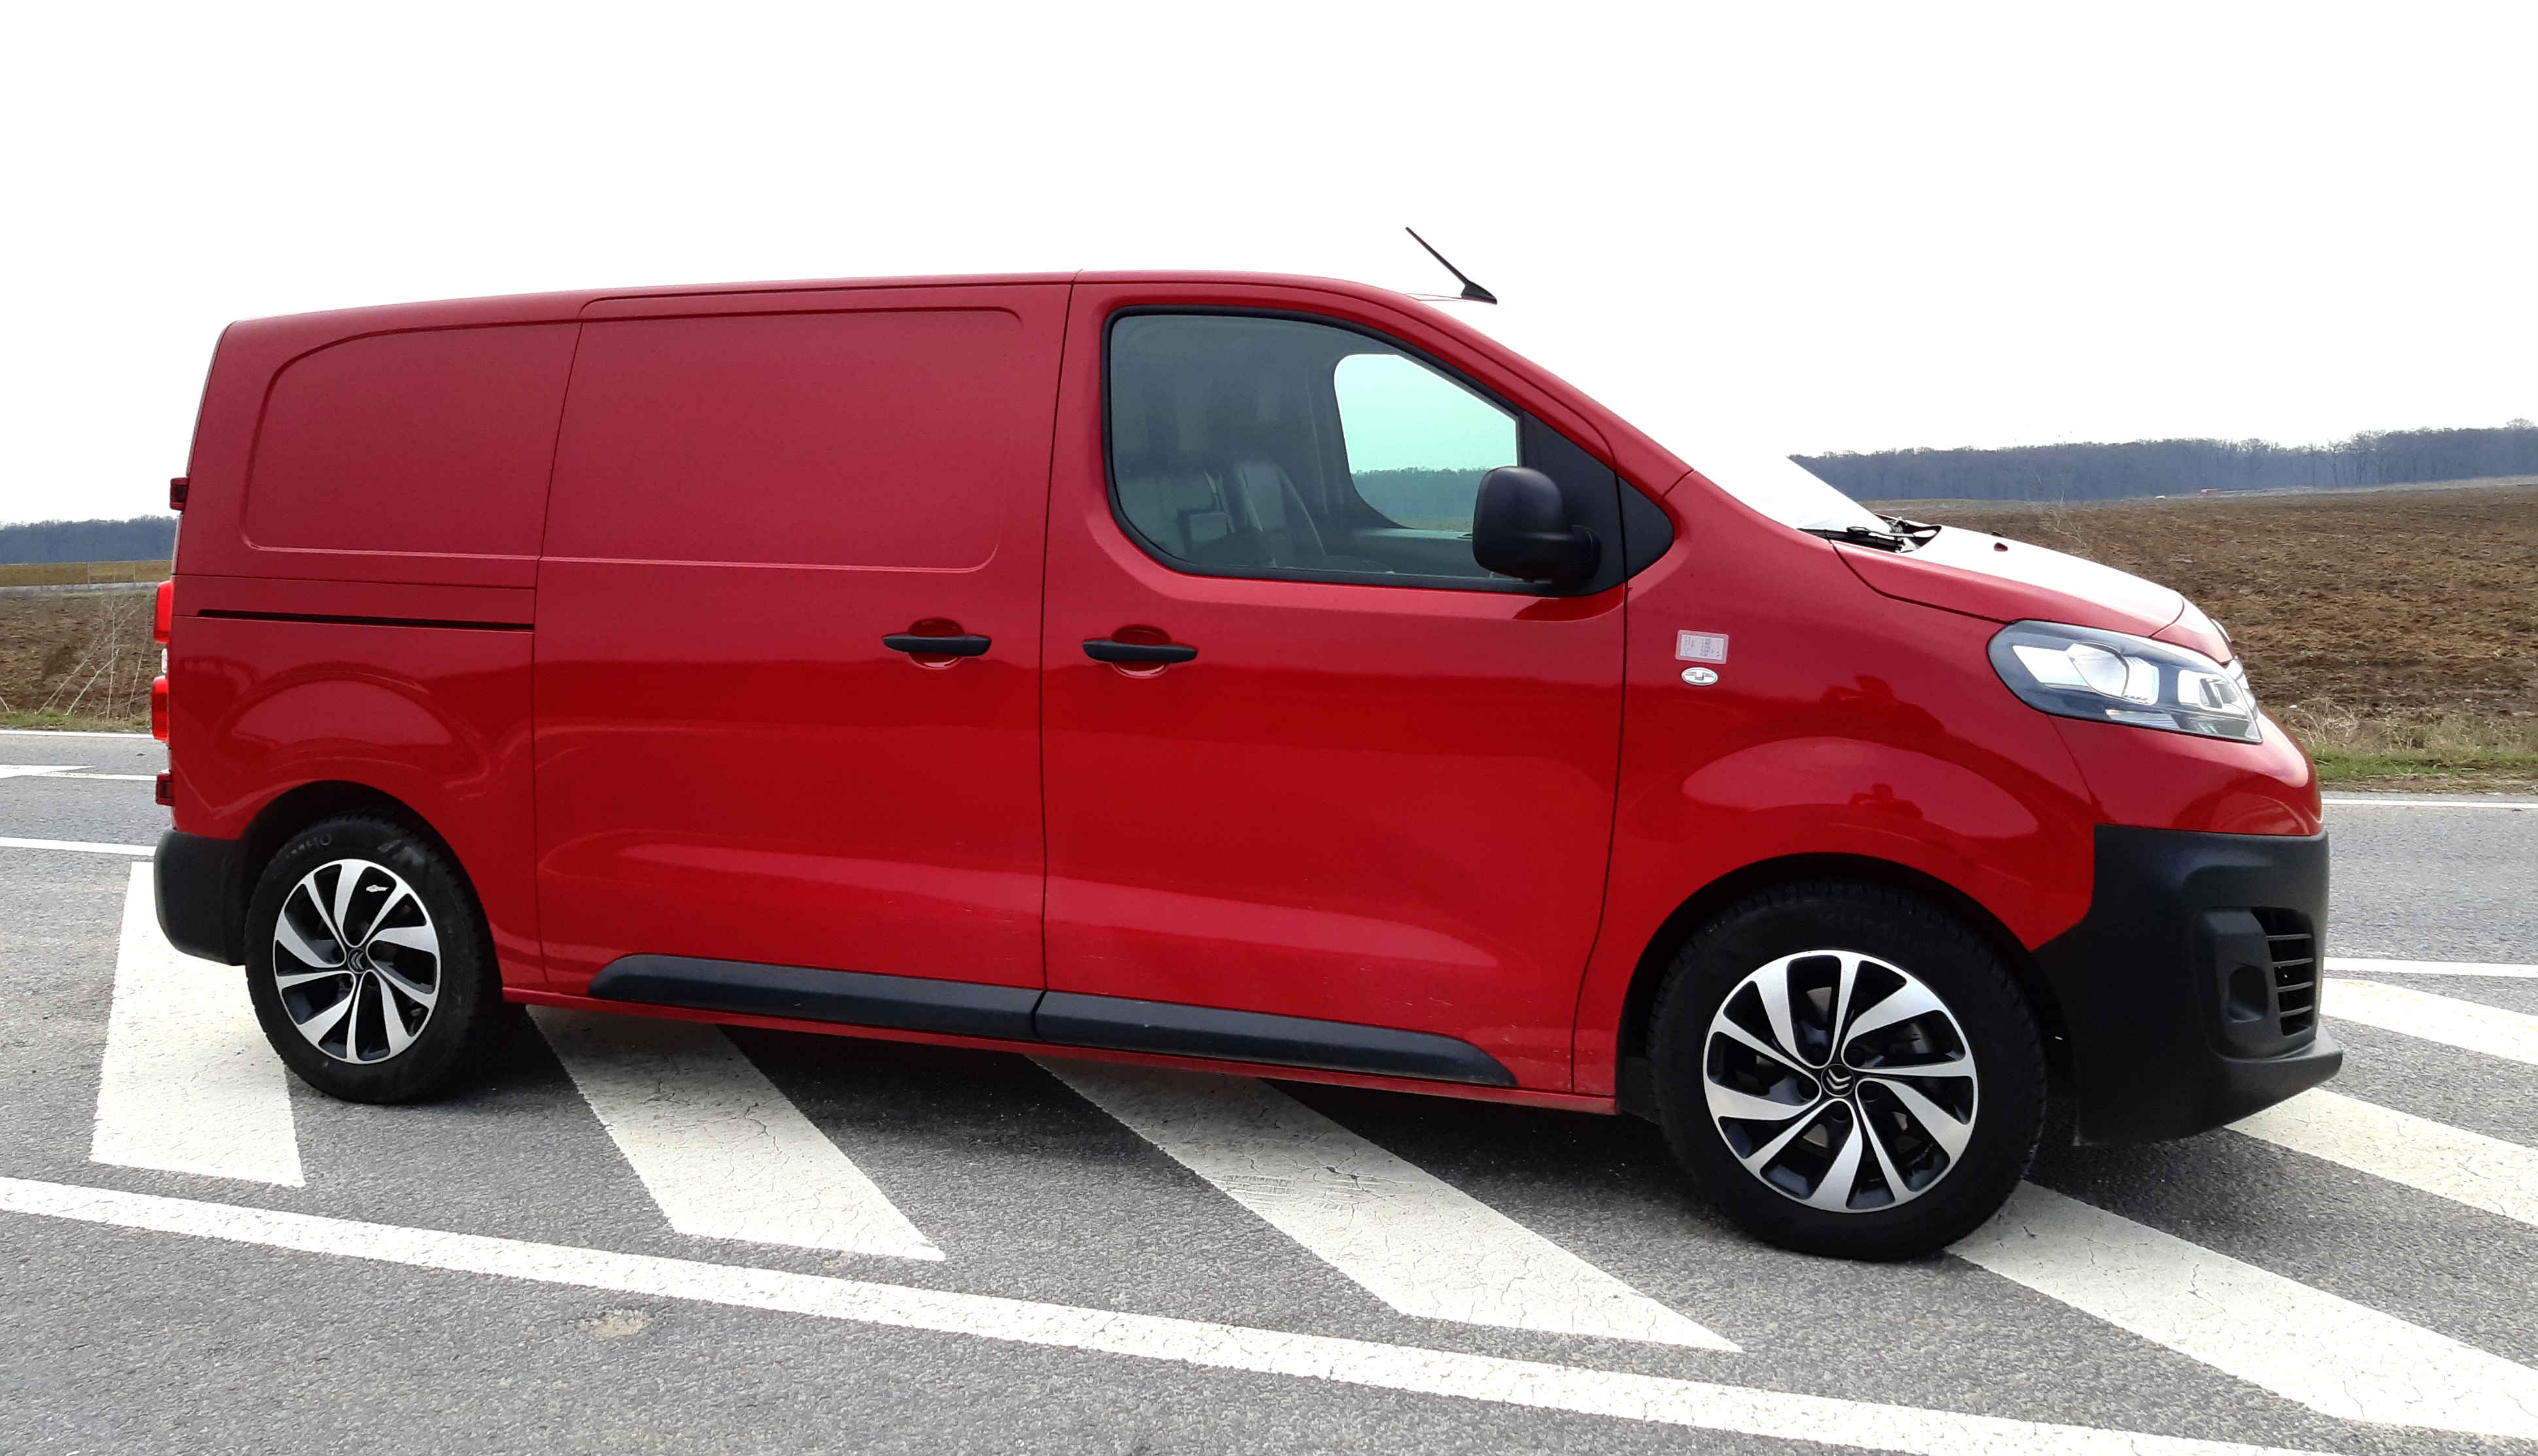 Citroen Jumpy 2018 1.6 BlueHDI S&S 115 CP, test drive, drive test, test premiera whattruck, test autolatest, test Citroen Jumpy 2018 1.6 BlueHDI S&S 115 CP, consum Citroen Jumpy 2018 1.6 BlueHDI S&S 115 CP, lista preturi Citroen Jumpy 2018 1.6 BlueHDI S&S 115 CP, bucuresti timisoara Citroen Jumpy 2018 1.6 BlueHDI S&S 115 CP, test consum Citroen Jumpy 2018 1.6 BlueHDI S&S 115 CP, 0-100 km.h Citroen Jumpy 2018 1.6 BlueHDI S&S 115 CP, valoare de revanzare, vw transporter t6 vs Citroen Jumpy 2018 1.6 BlueHDI S&S 115 CP, renault trafic 1.6 dci vs Citroen Jumpy 2018 1.6 BlueHDI S&S 115 CP, toyota proace 1.6 DID vs Citroen Jumpy 2018 1.6 BlueHDI S&S 115 CP